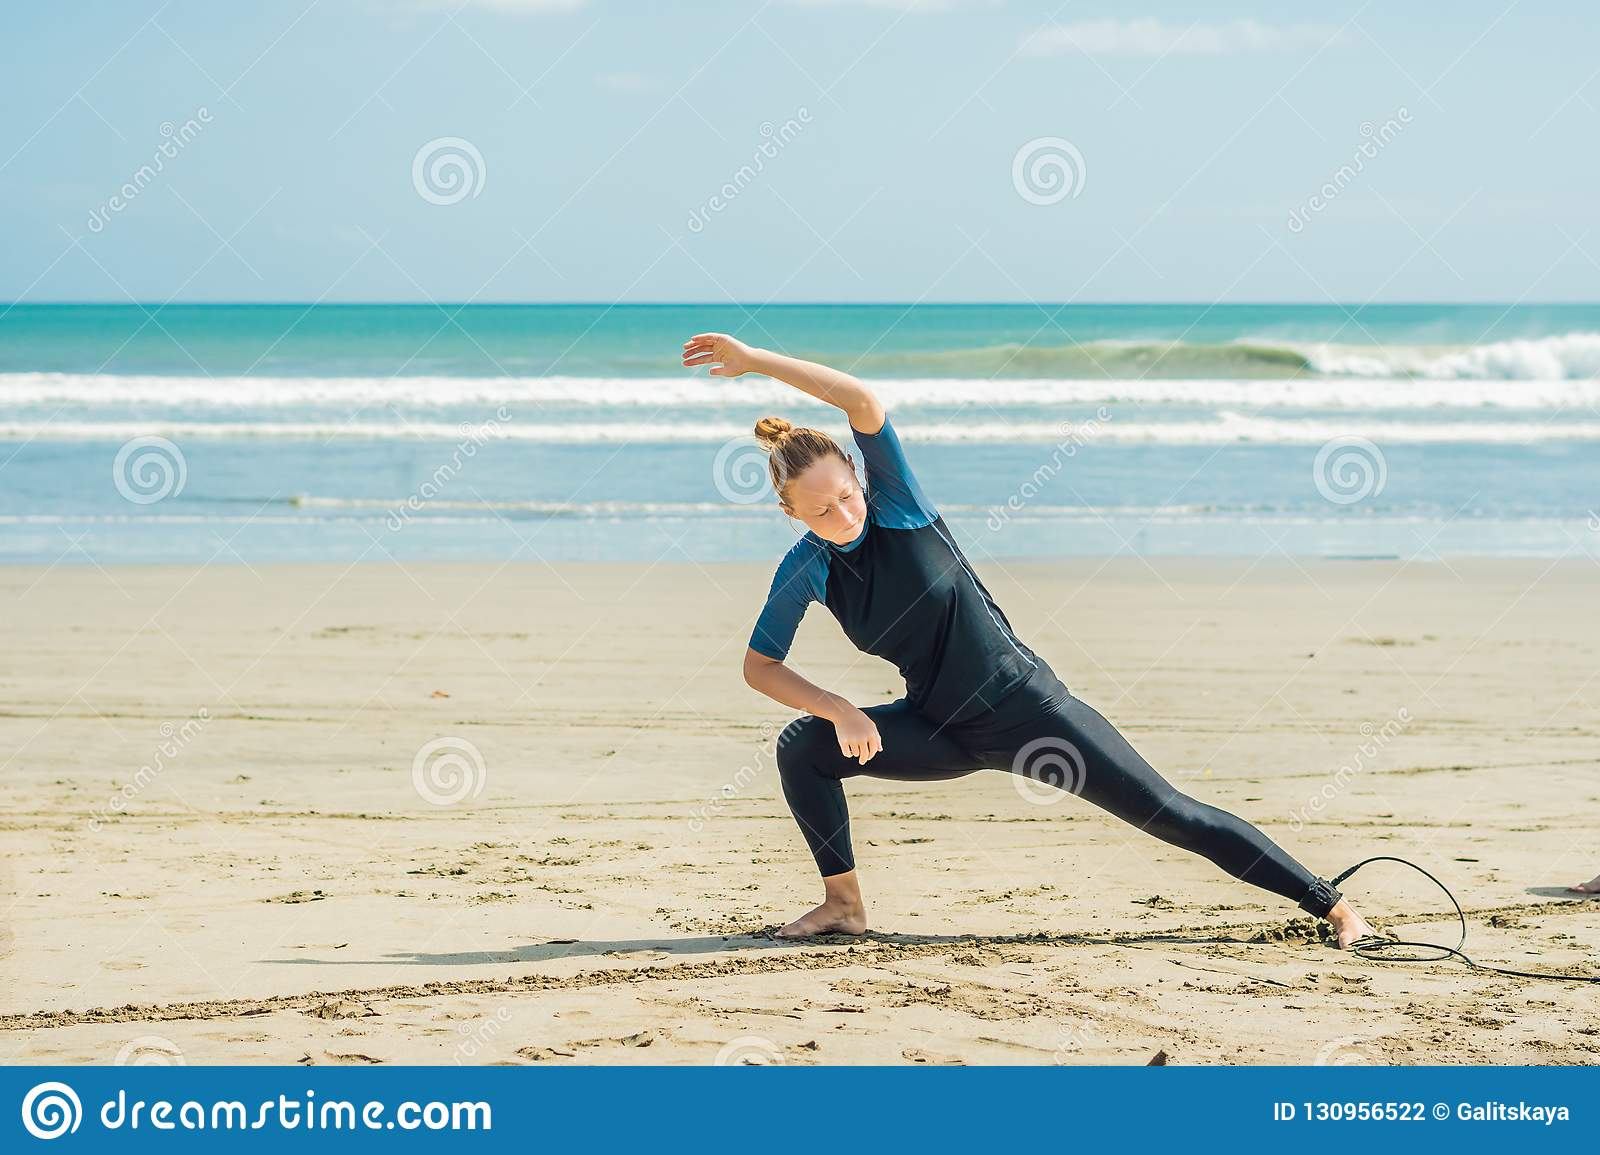 Young woman surfer warming up on the beach before surfing